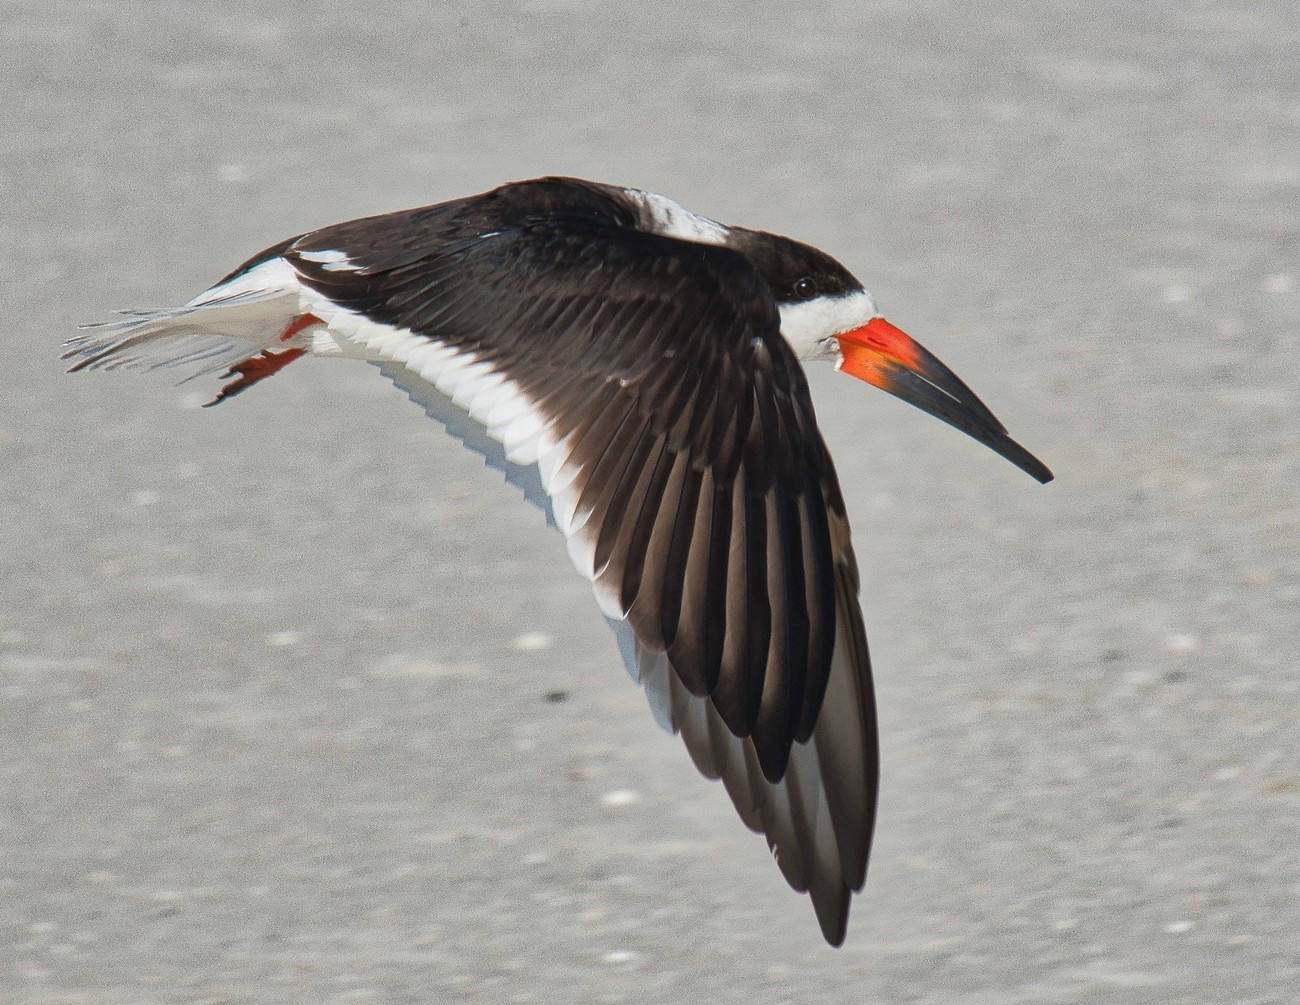 The very odd (for many reasons) Black Skimmer.  Note lower bill is longer than upper bill and the somewhat detached lower bill from the body.  This allows the bird to skim the water to scoop up fish and other food.  See photo  in my Gallery of the Black Skimmer in action.  Photo was taken on Siesta Key beach.